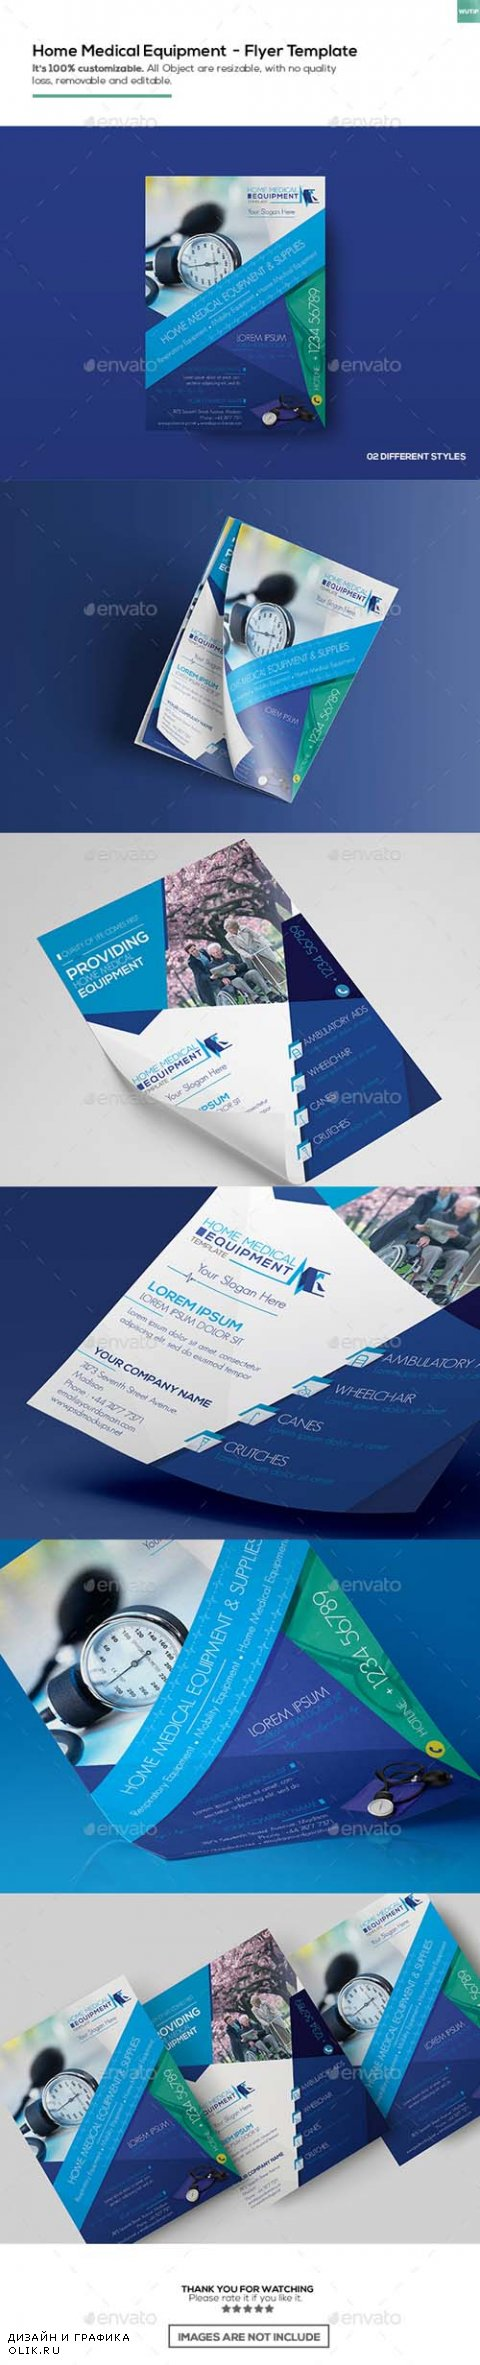 Home Medical Equipment/ Flyer Template 16895879